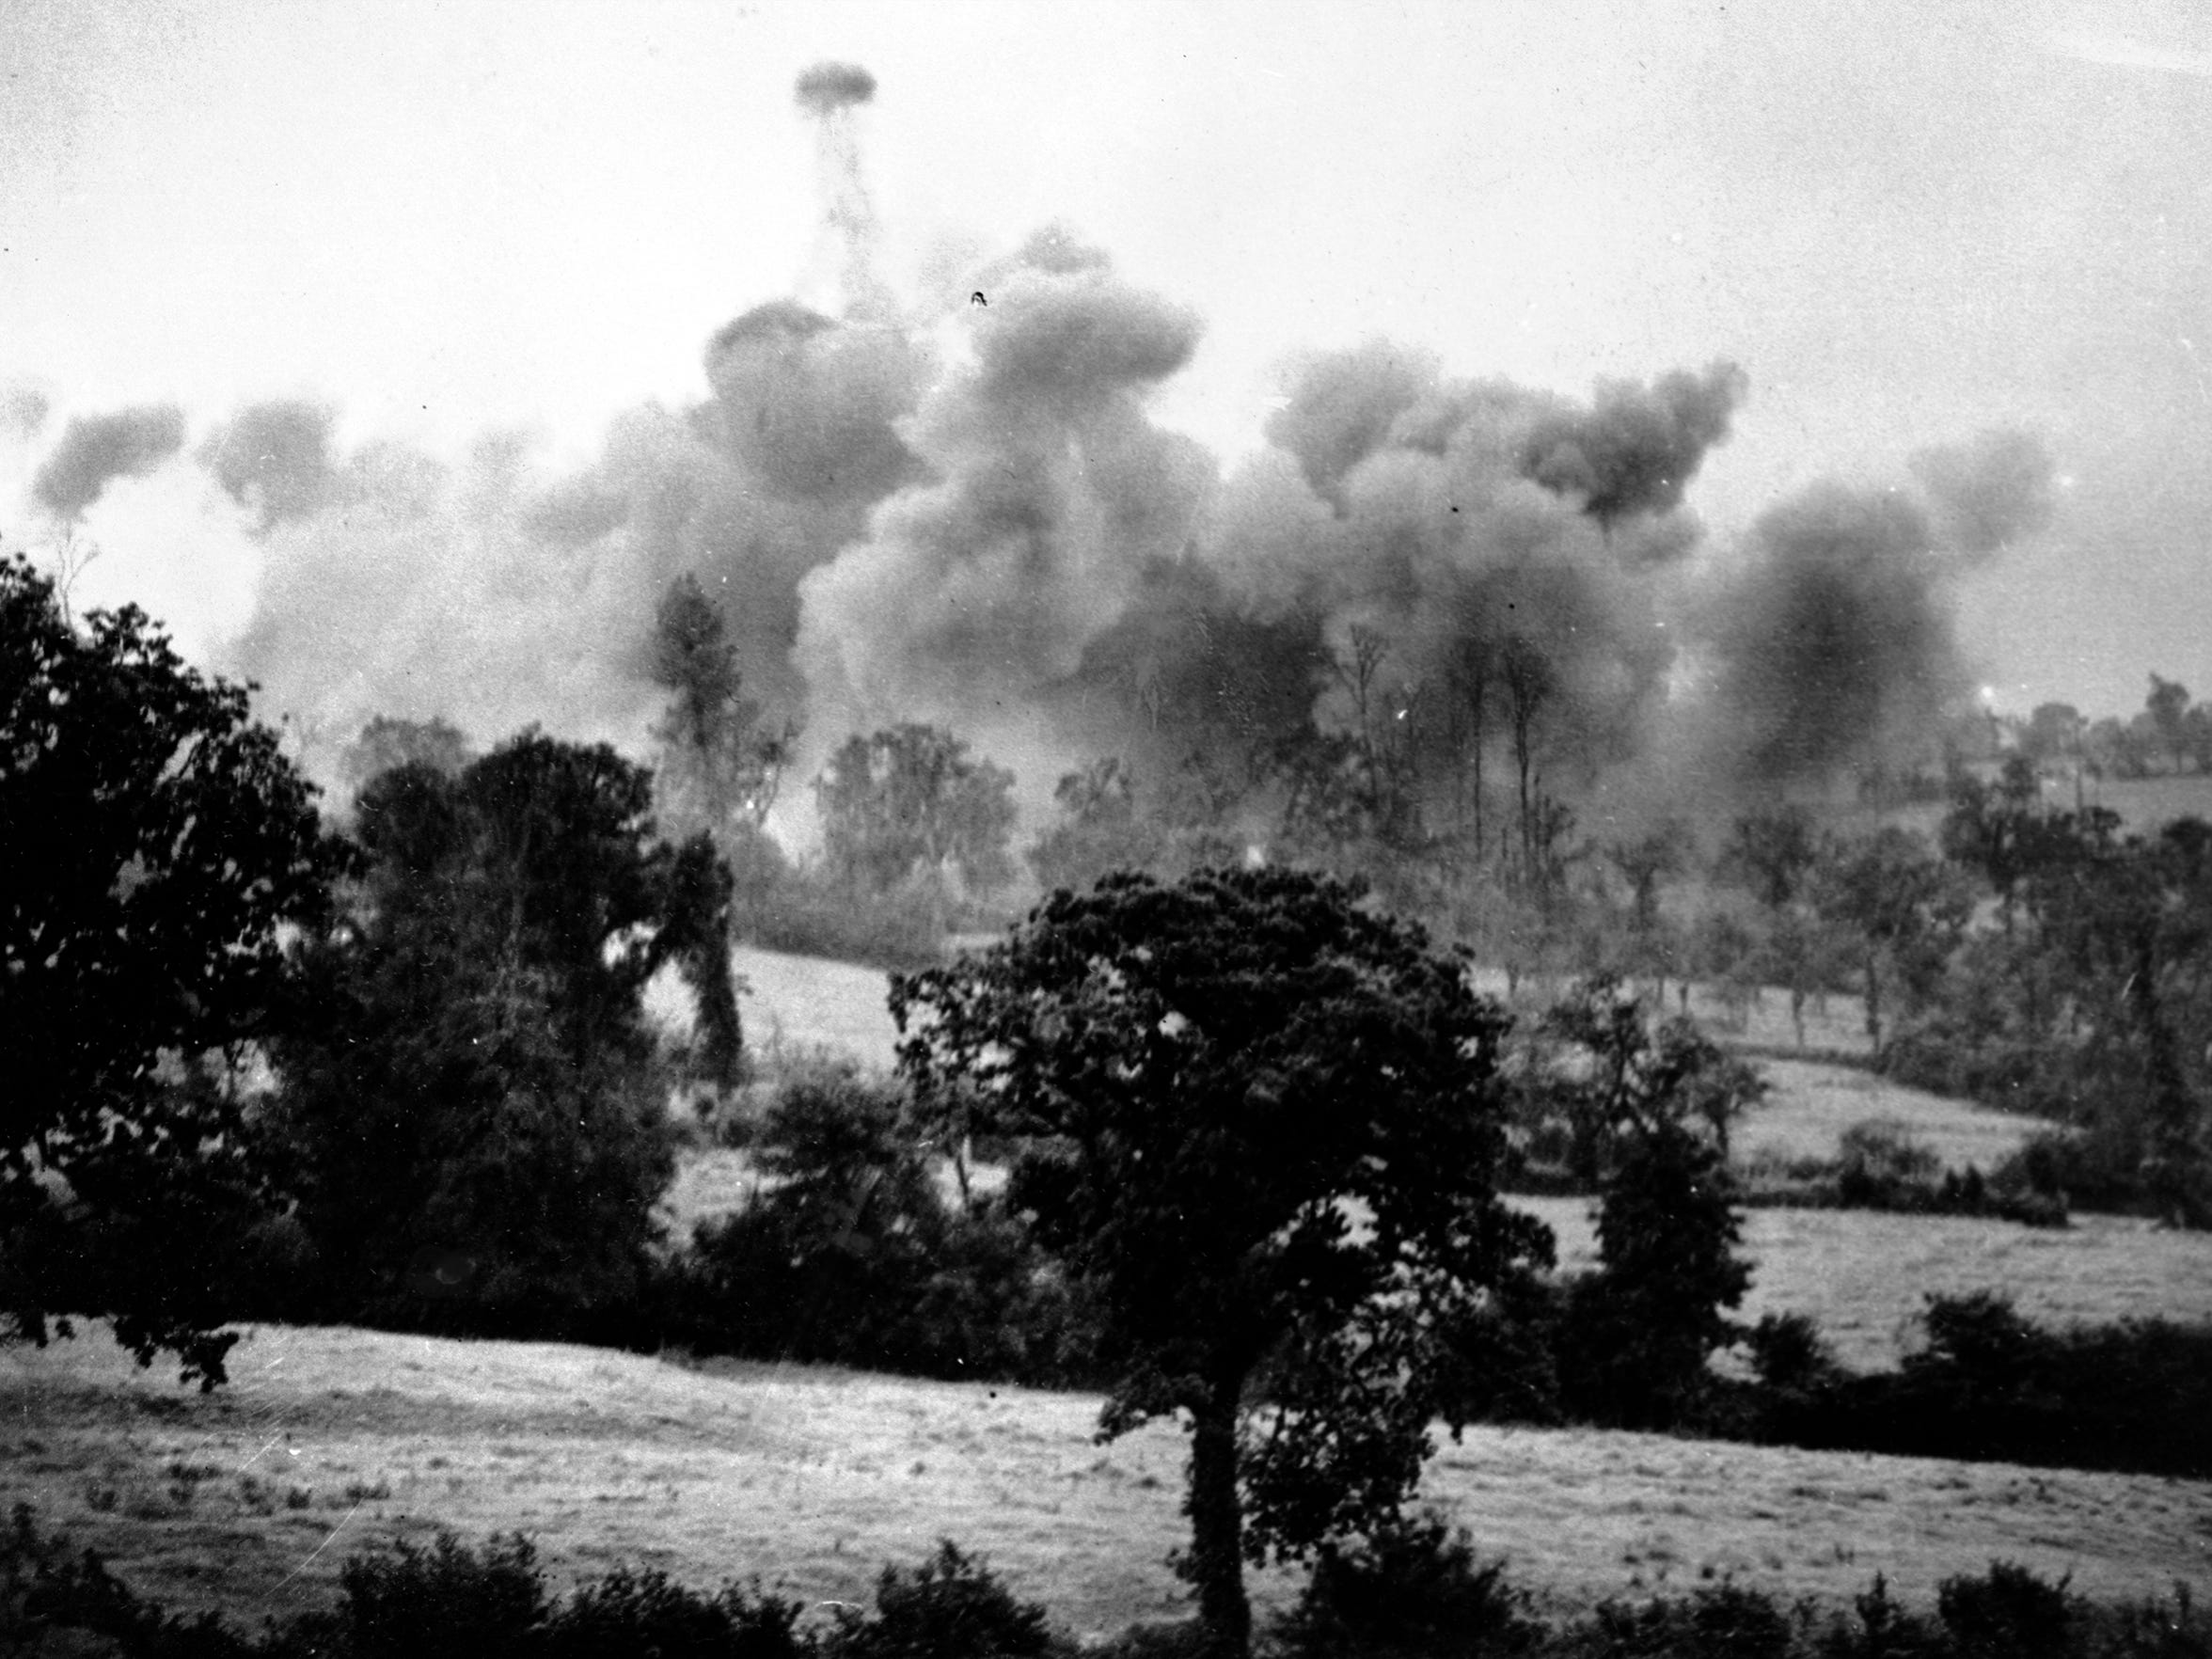 Thousand pound bombs explode near German lines during tha launch of a new American offensive in the St. Lo sector of France, July 26, 1944. This was the last picture taken by Associated Press war photographer, G. Bede Irvin, before he was killed by a bomb fragment. The film pack containing this picture was the only part of Irvin's equipment left intact by the bomb explosion and was sent from the front by a fellow photographer.